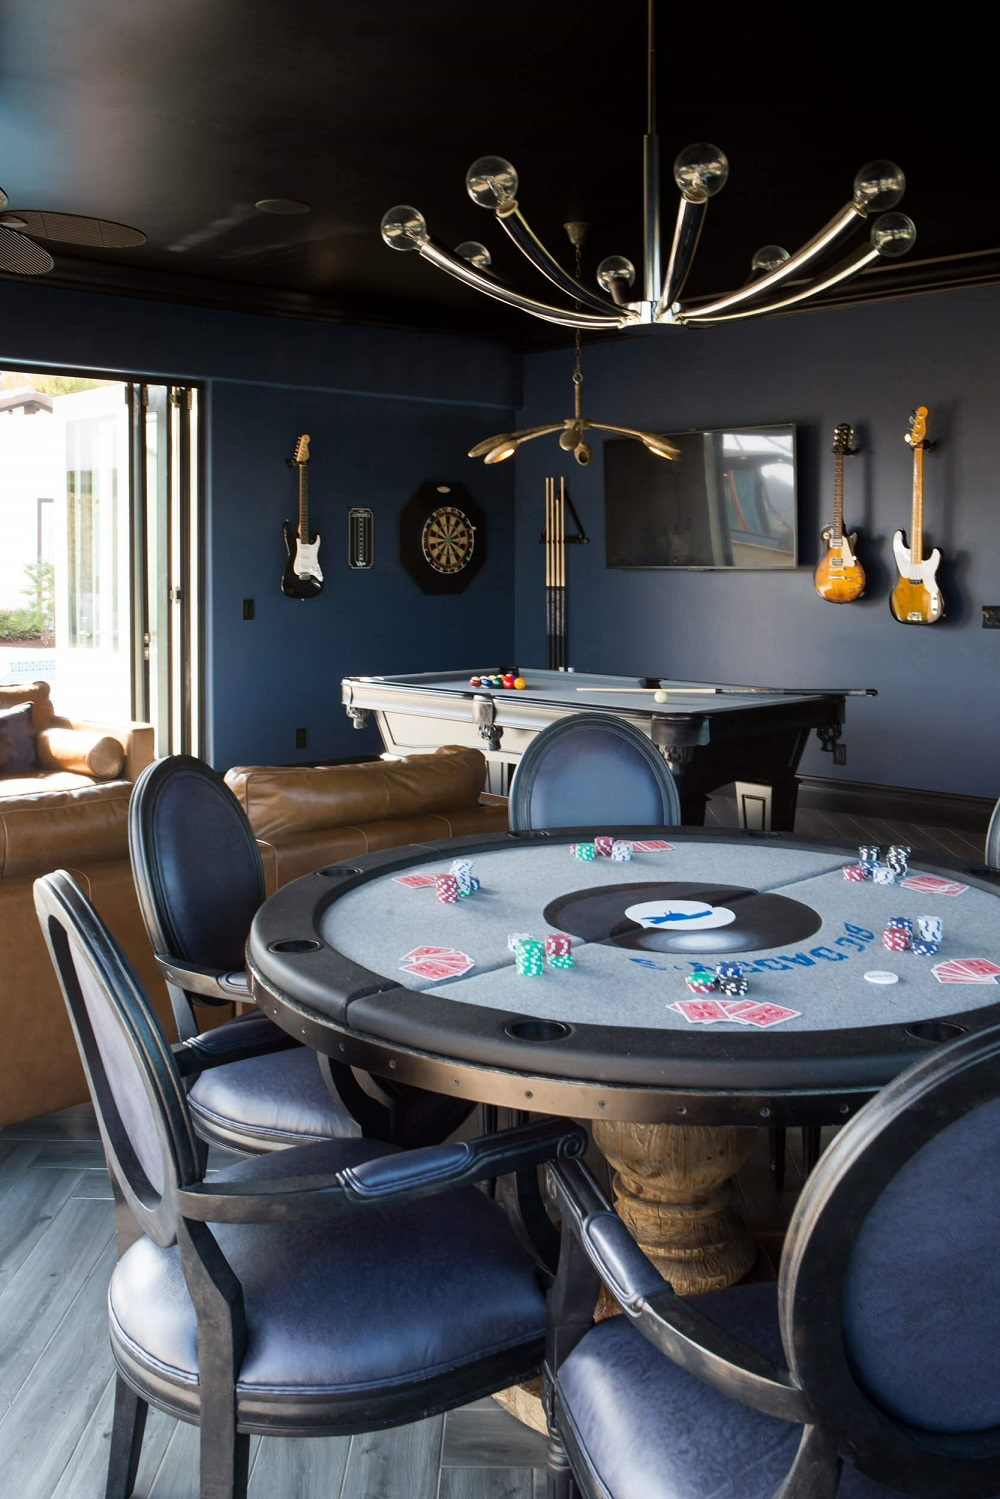 t2-101 Man Cave decor ideas, decorations and accessories to enhance the place